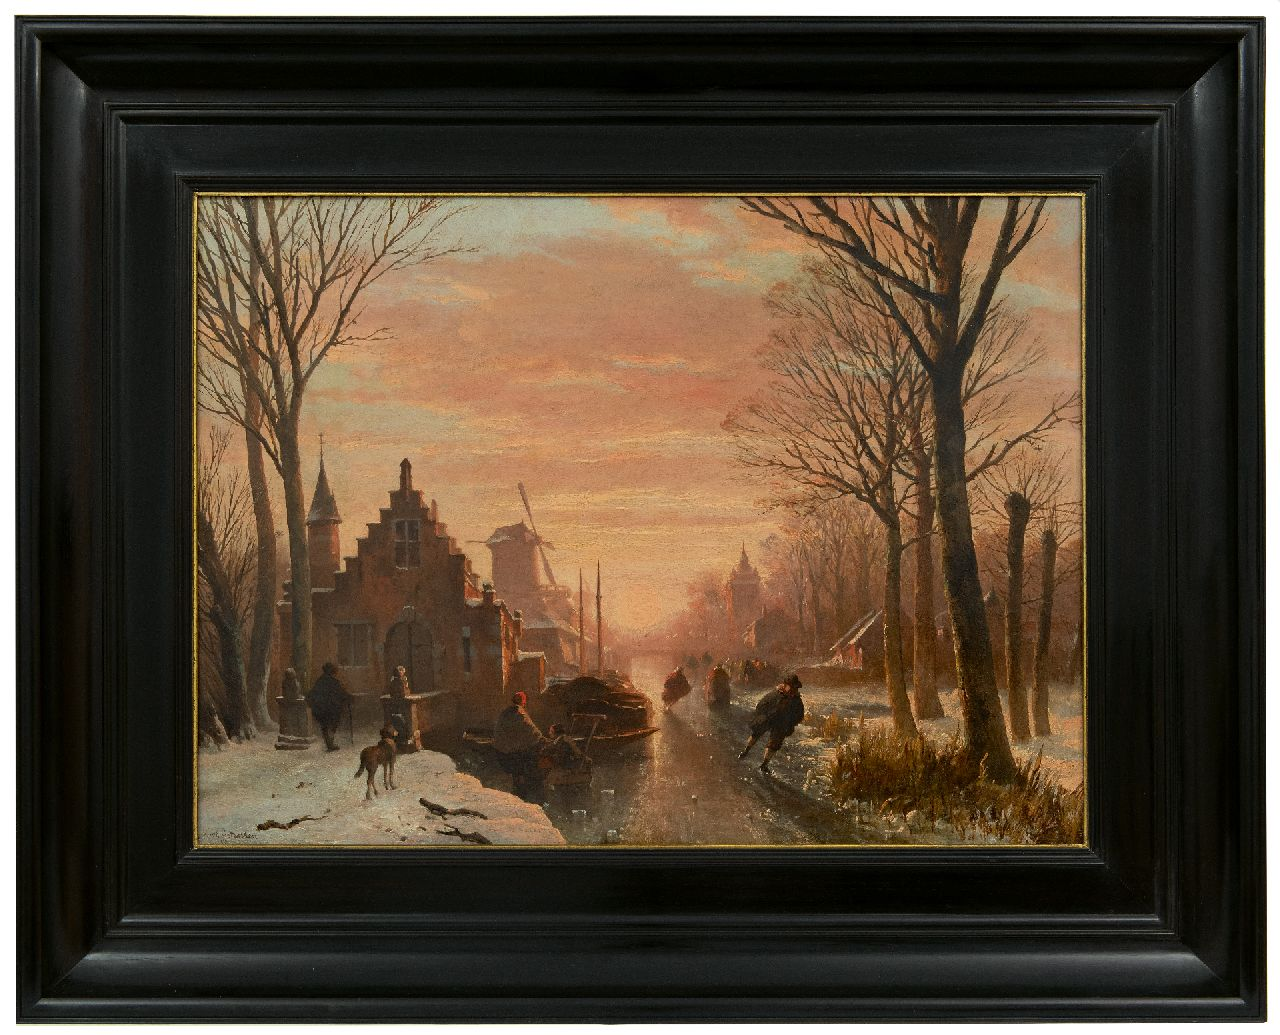 Wayen Pieterszen A. van der | Abraham van der Wayen Pieterszen | Paintings offered for sale | Skaters on a frozen town canal at sunset, oil on panel 43.3 x 59.3 cm, signed l.l.